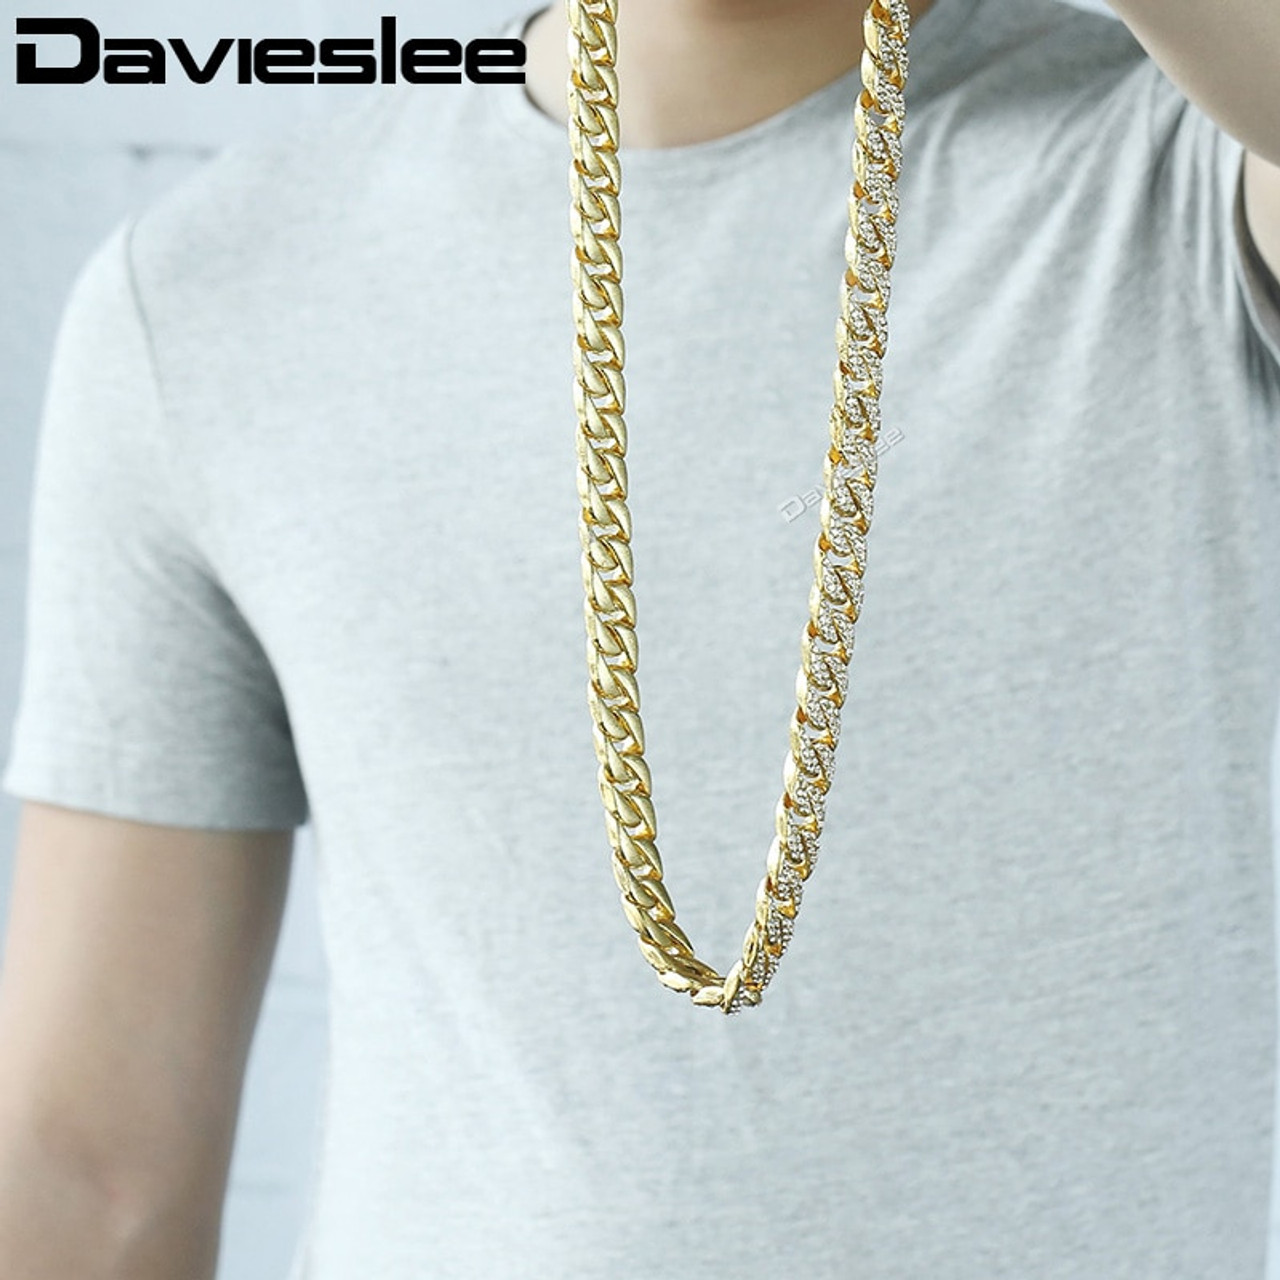 Davieslee Men's Gold Necklace Miami Curb Cuban Chain Necklaces For Men Iced  Out Hip Hop Woman Jewelry Dropshipping 14mm DGN455